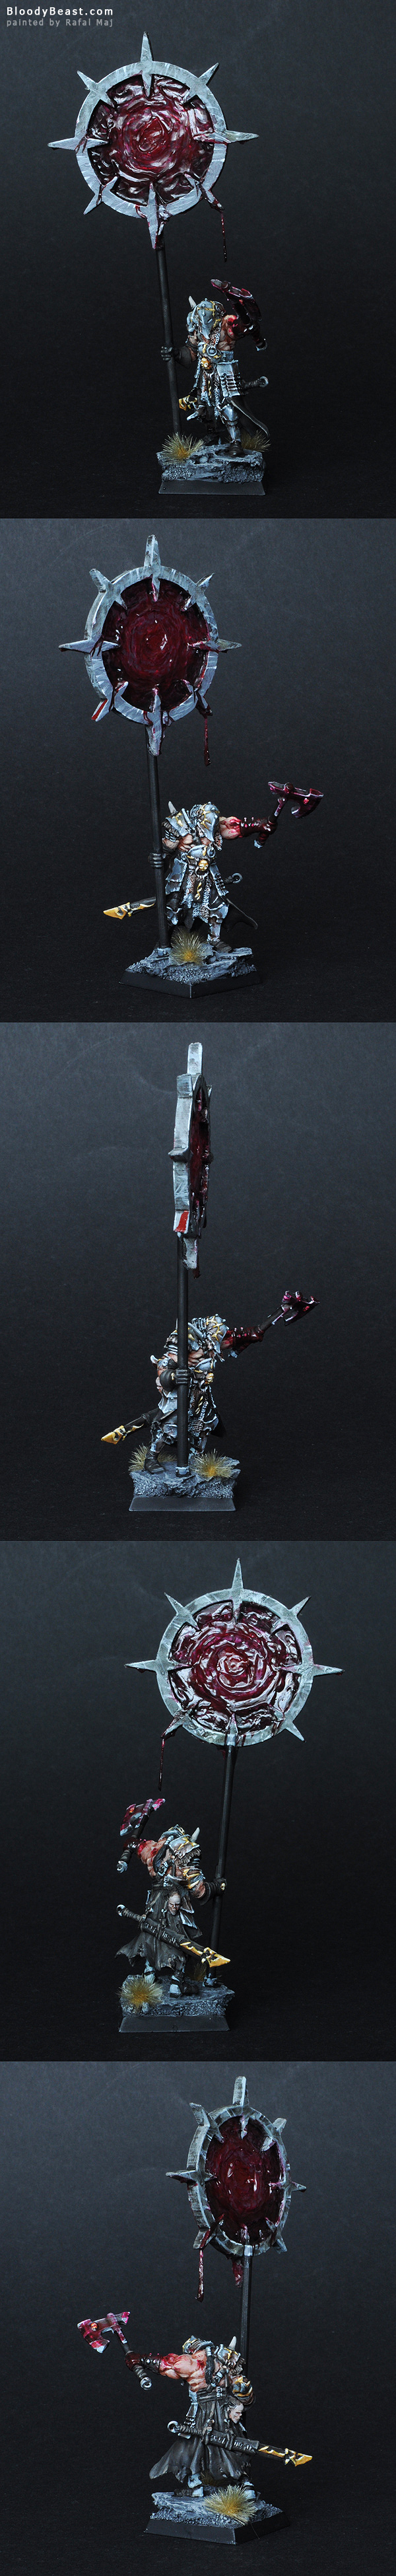 Chaos Battle Standard Bearer painted by Rafal Maj (BloodyBeast.com)